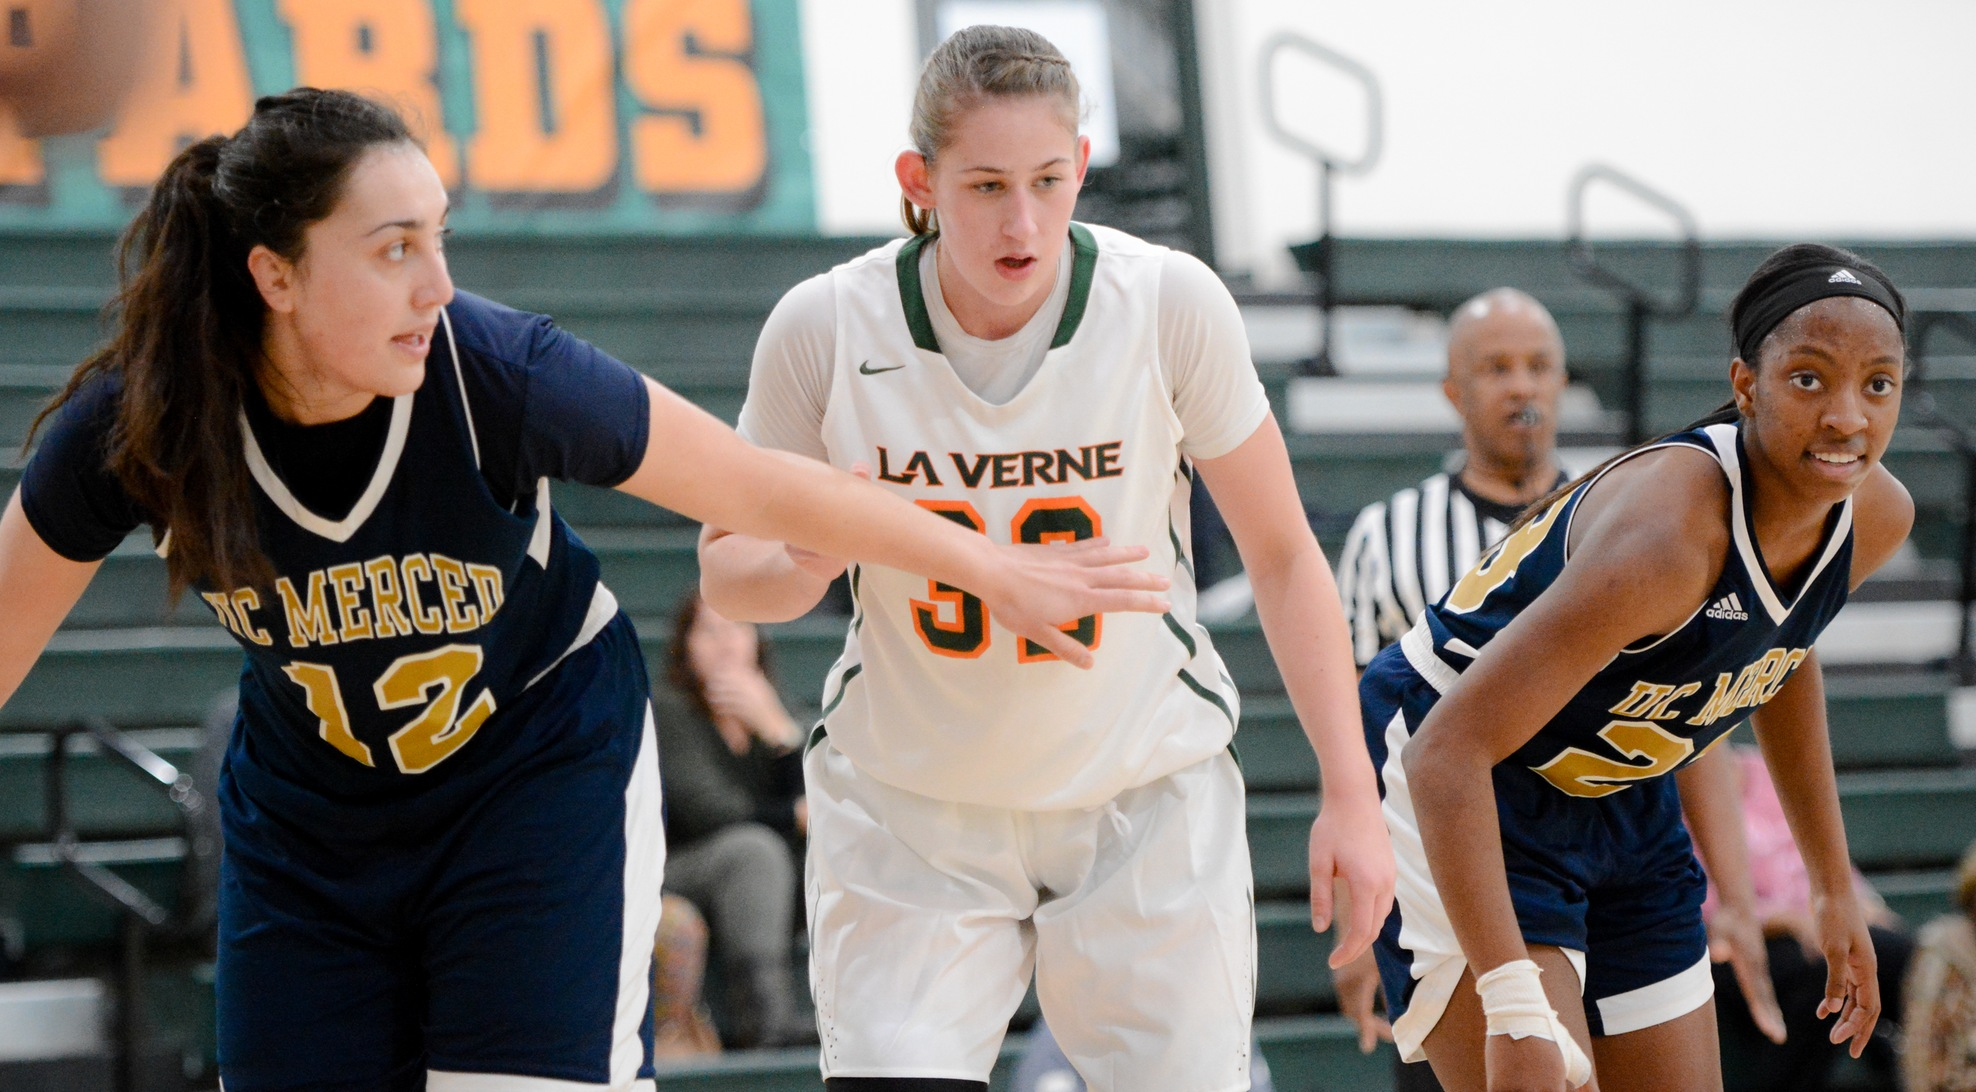 Chapman pulls away in second half to beat La Verne 79-58